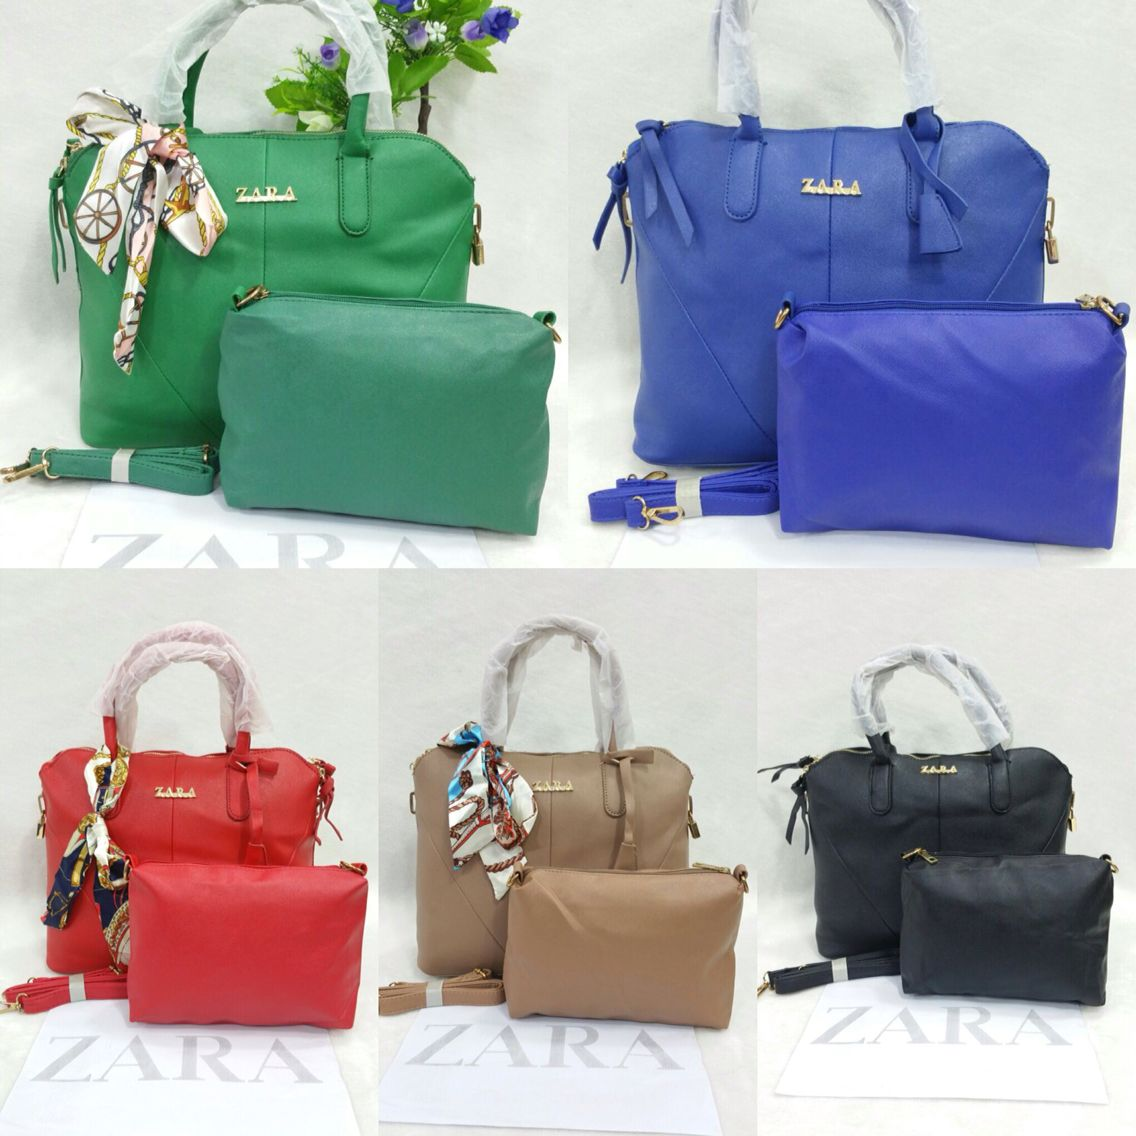 Zara Purse Combo Shipping Only In India For Price Wats 8686654314